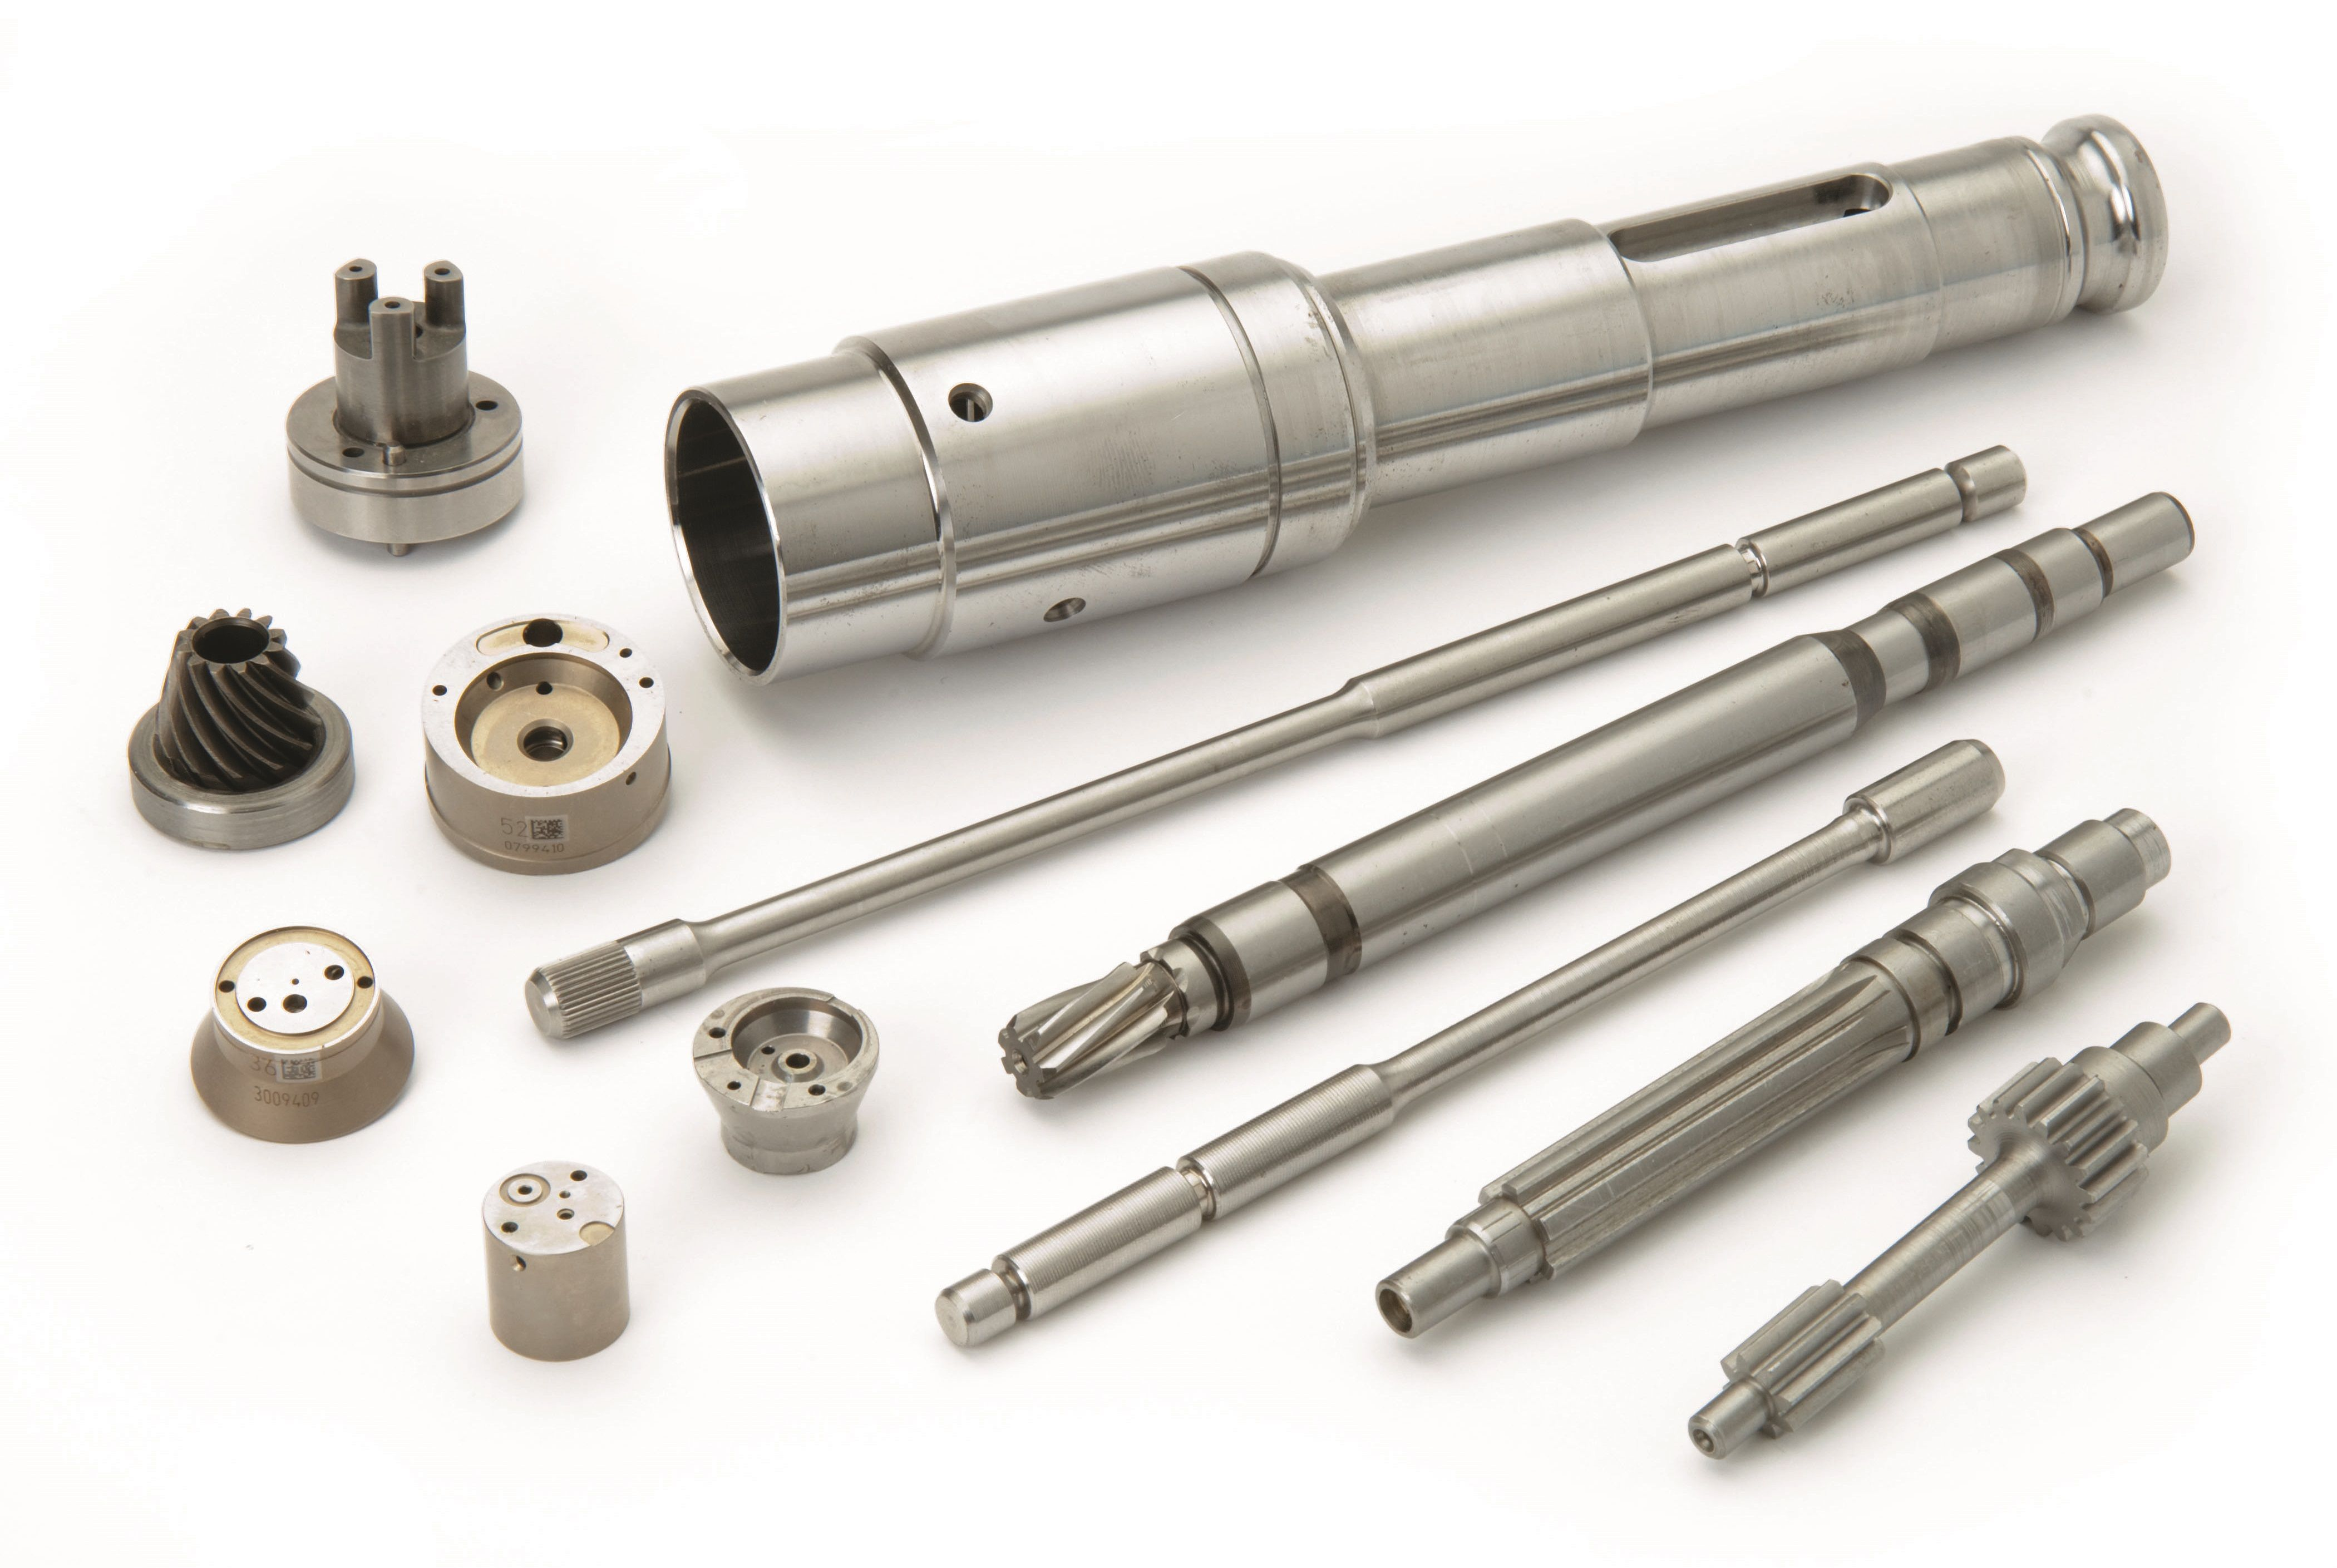 Steel bars and components